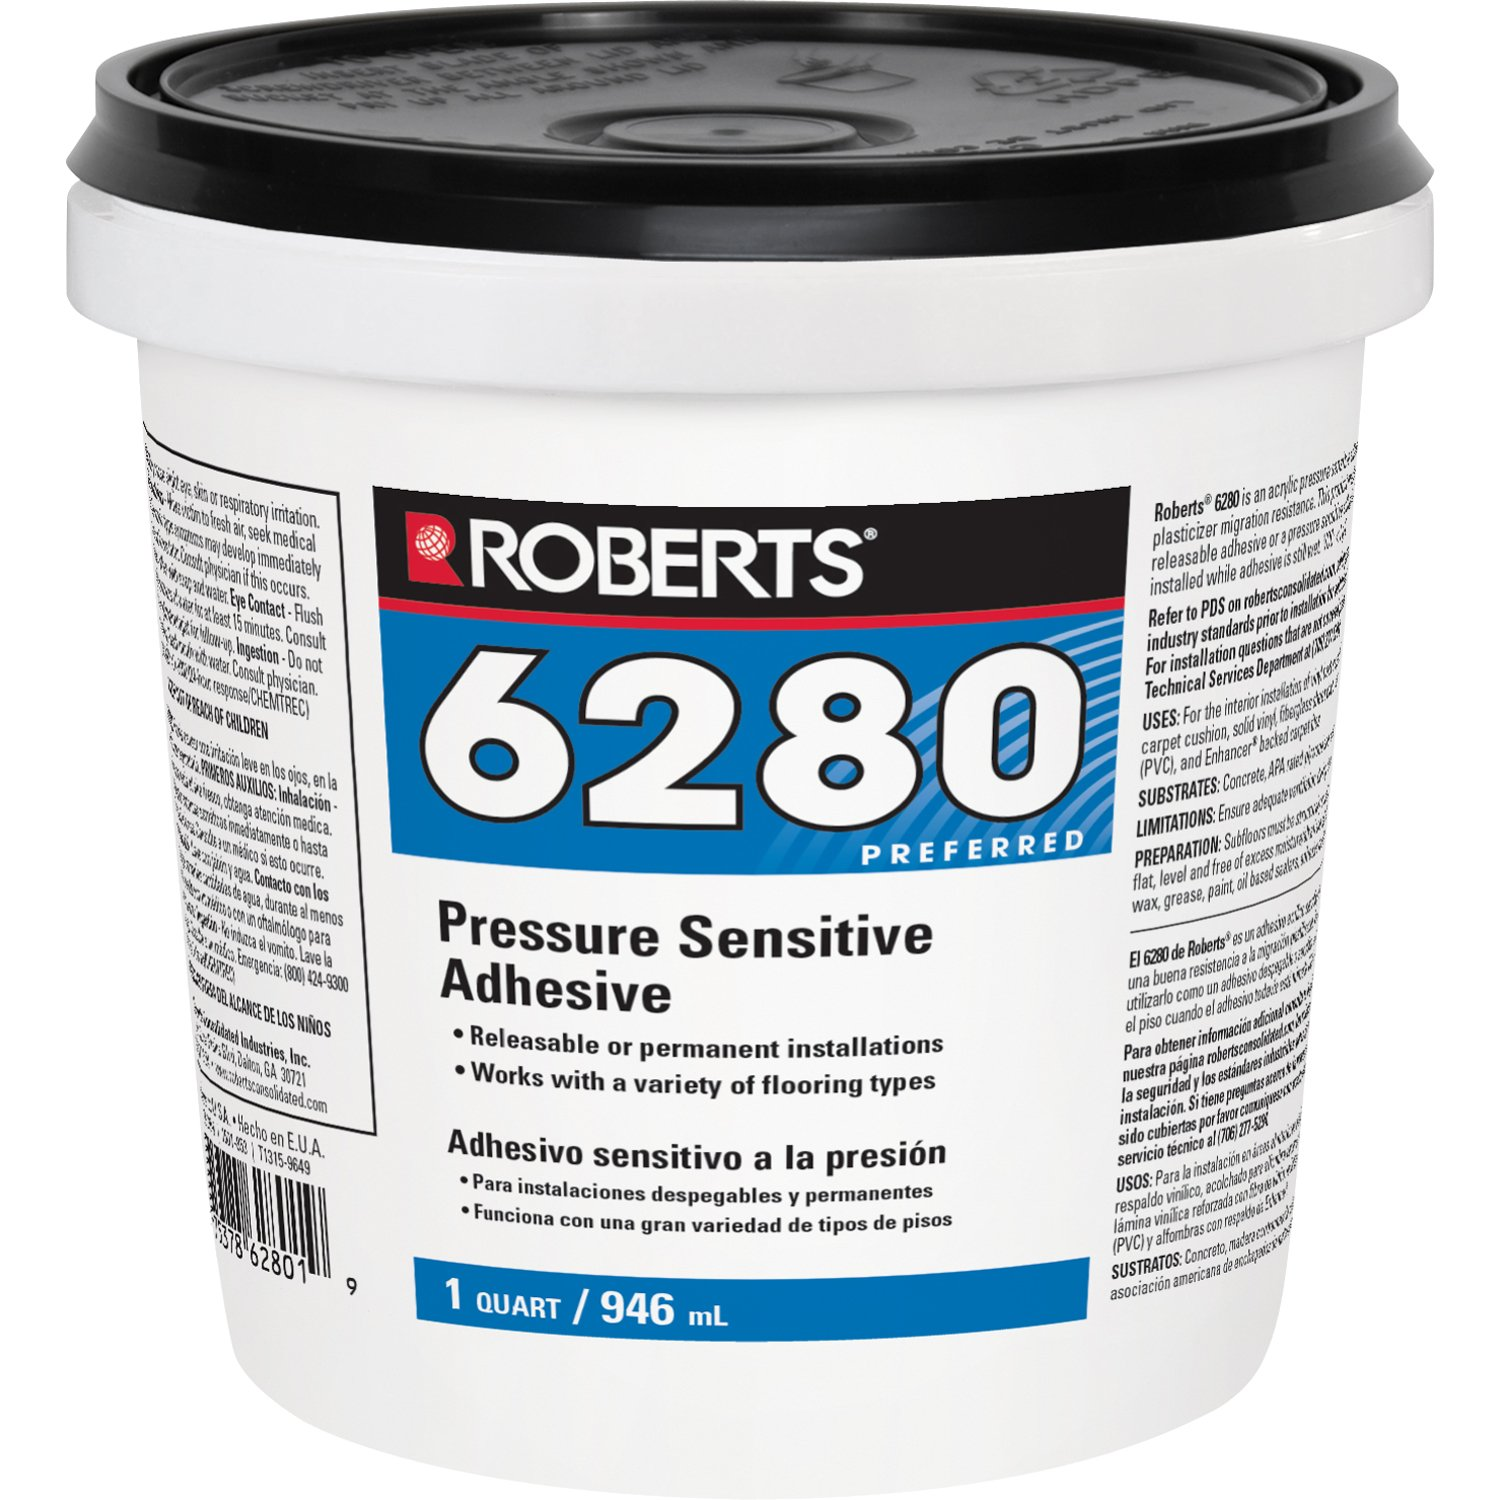 Roberts R6280-0 Adhesive for the Interior Installation Back Commercial Carpet Cushion, Fiberglass Reinforced Sheet Luxury Vinyl Tiles, 1 Quart by Roberts (Image #1)